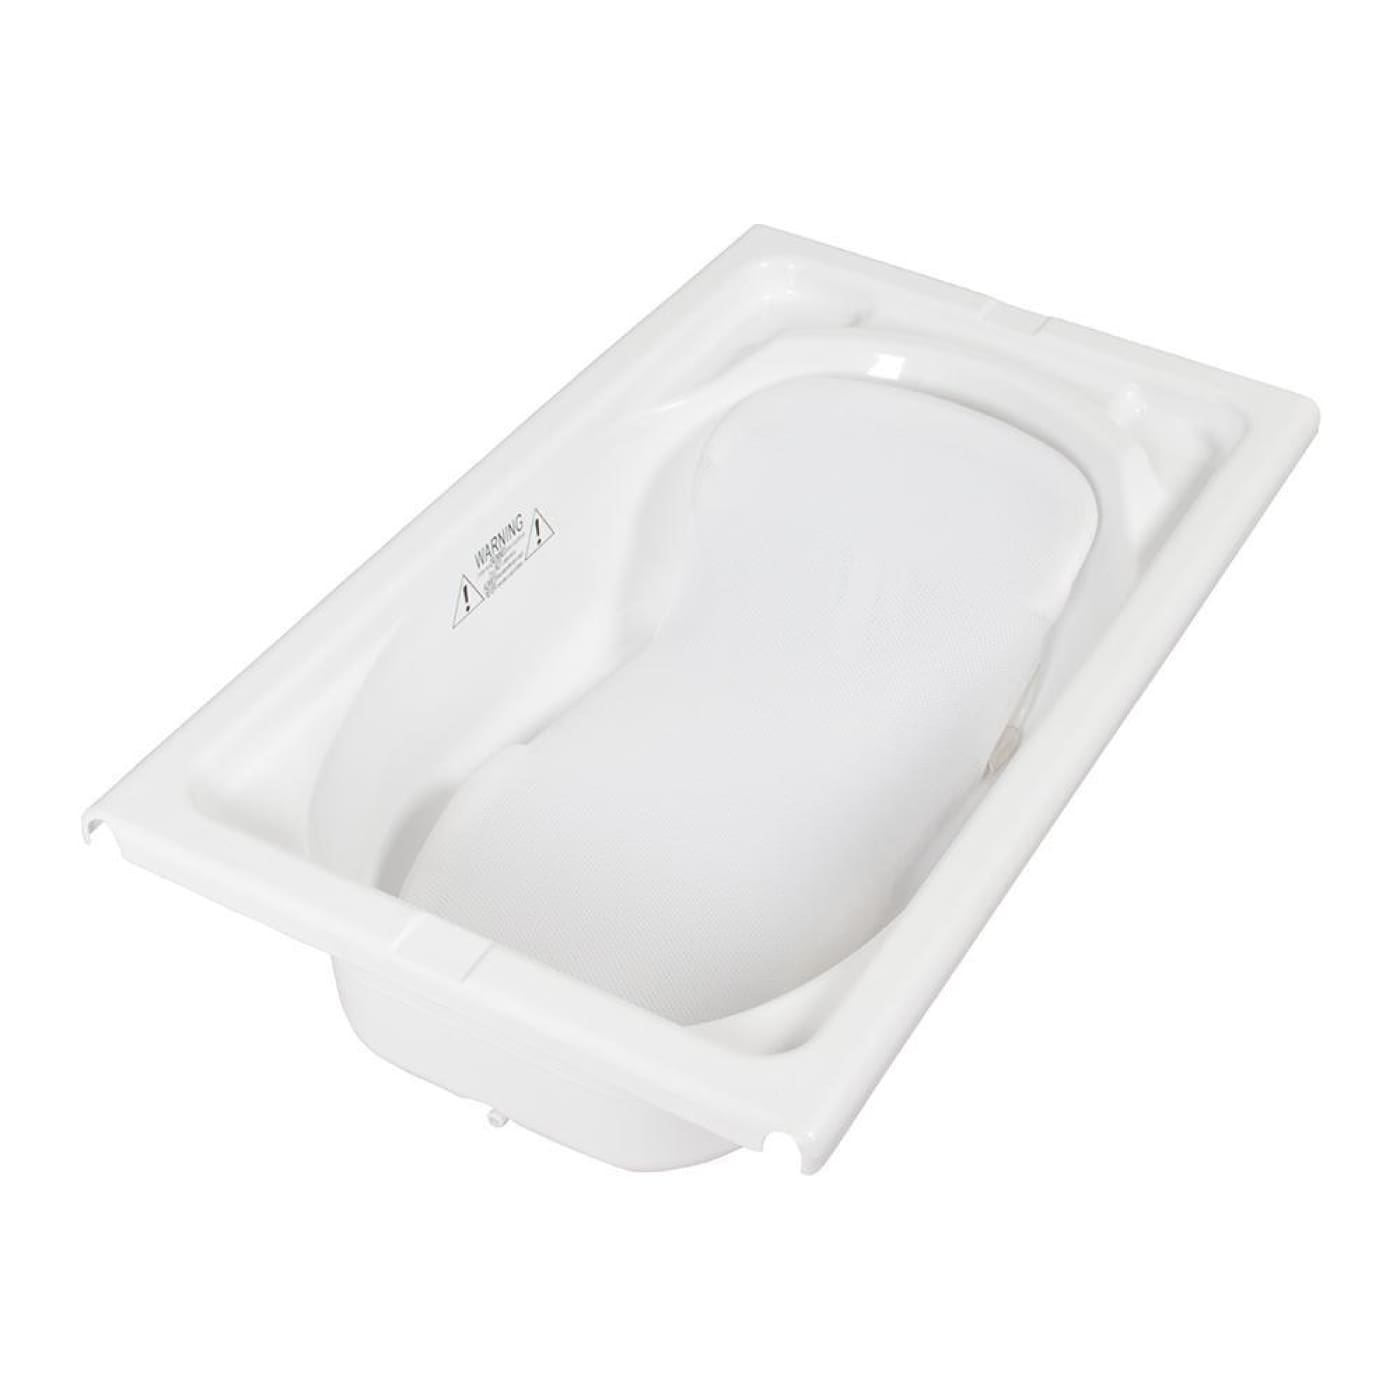 Childcare Ezi Bath Support - White - White - BATHTIME & CHANGING - BATH SUPPORTS/SEATS